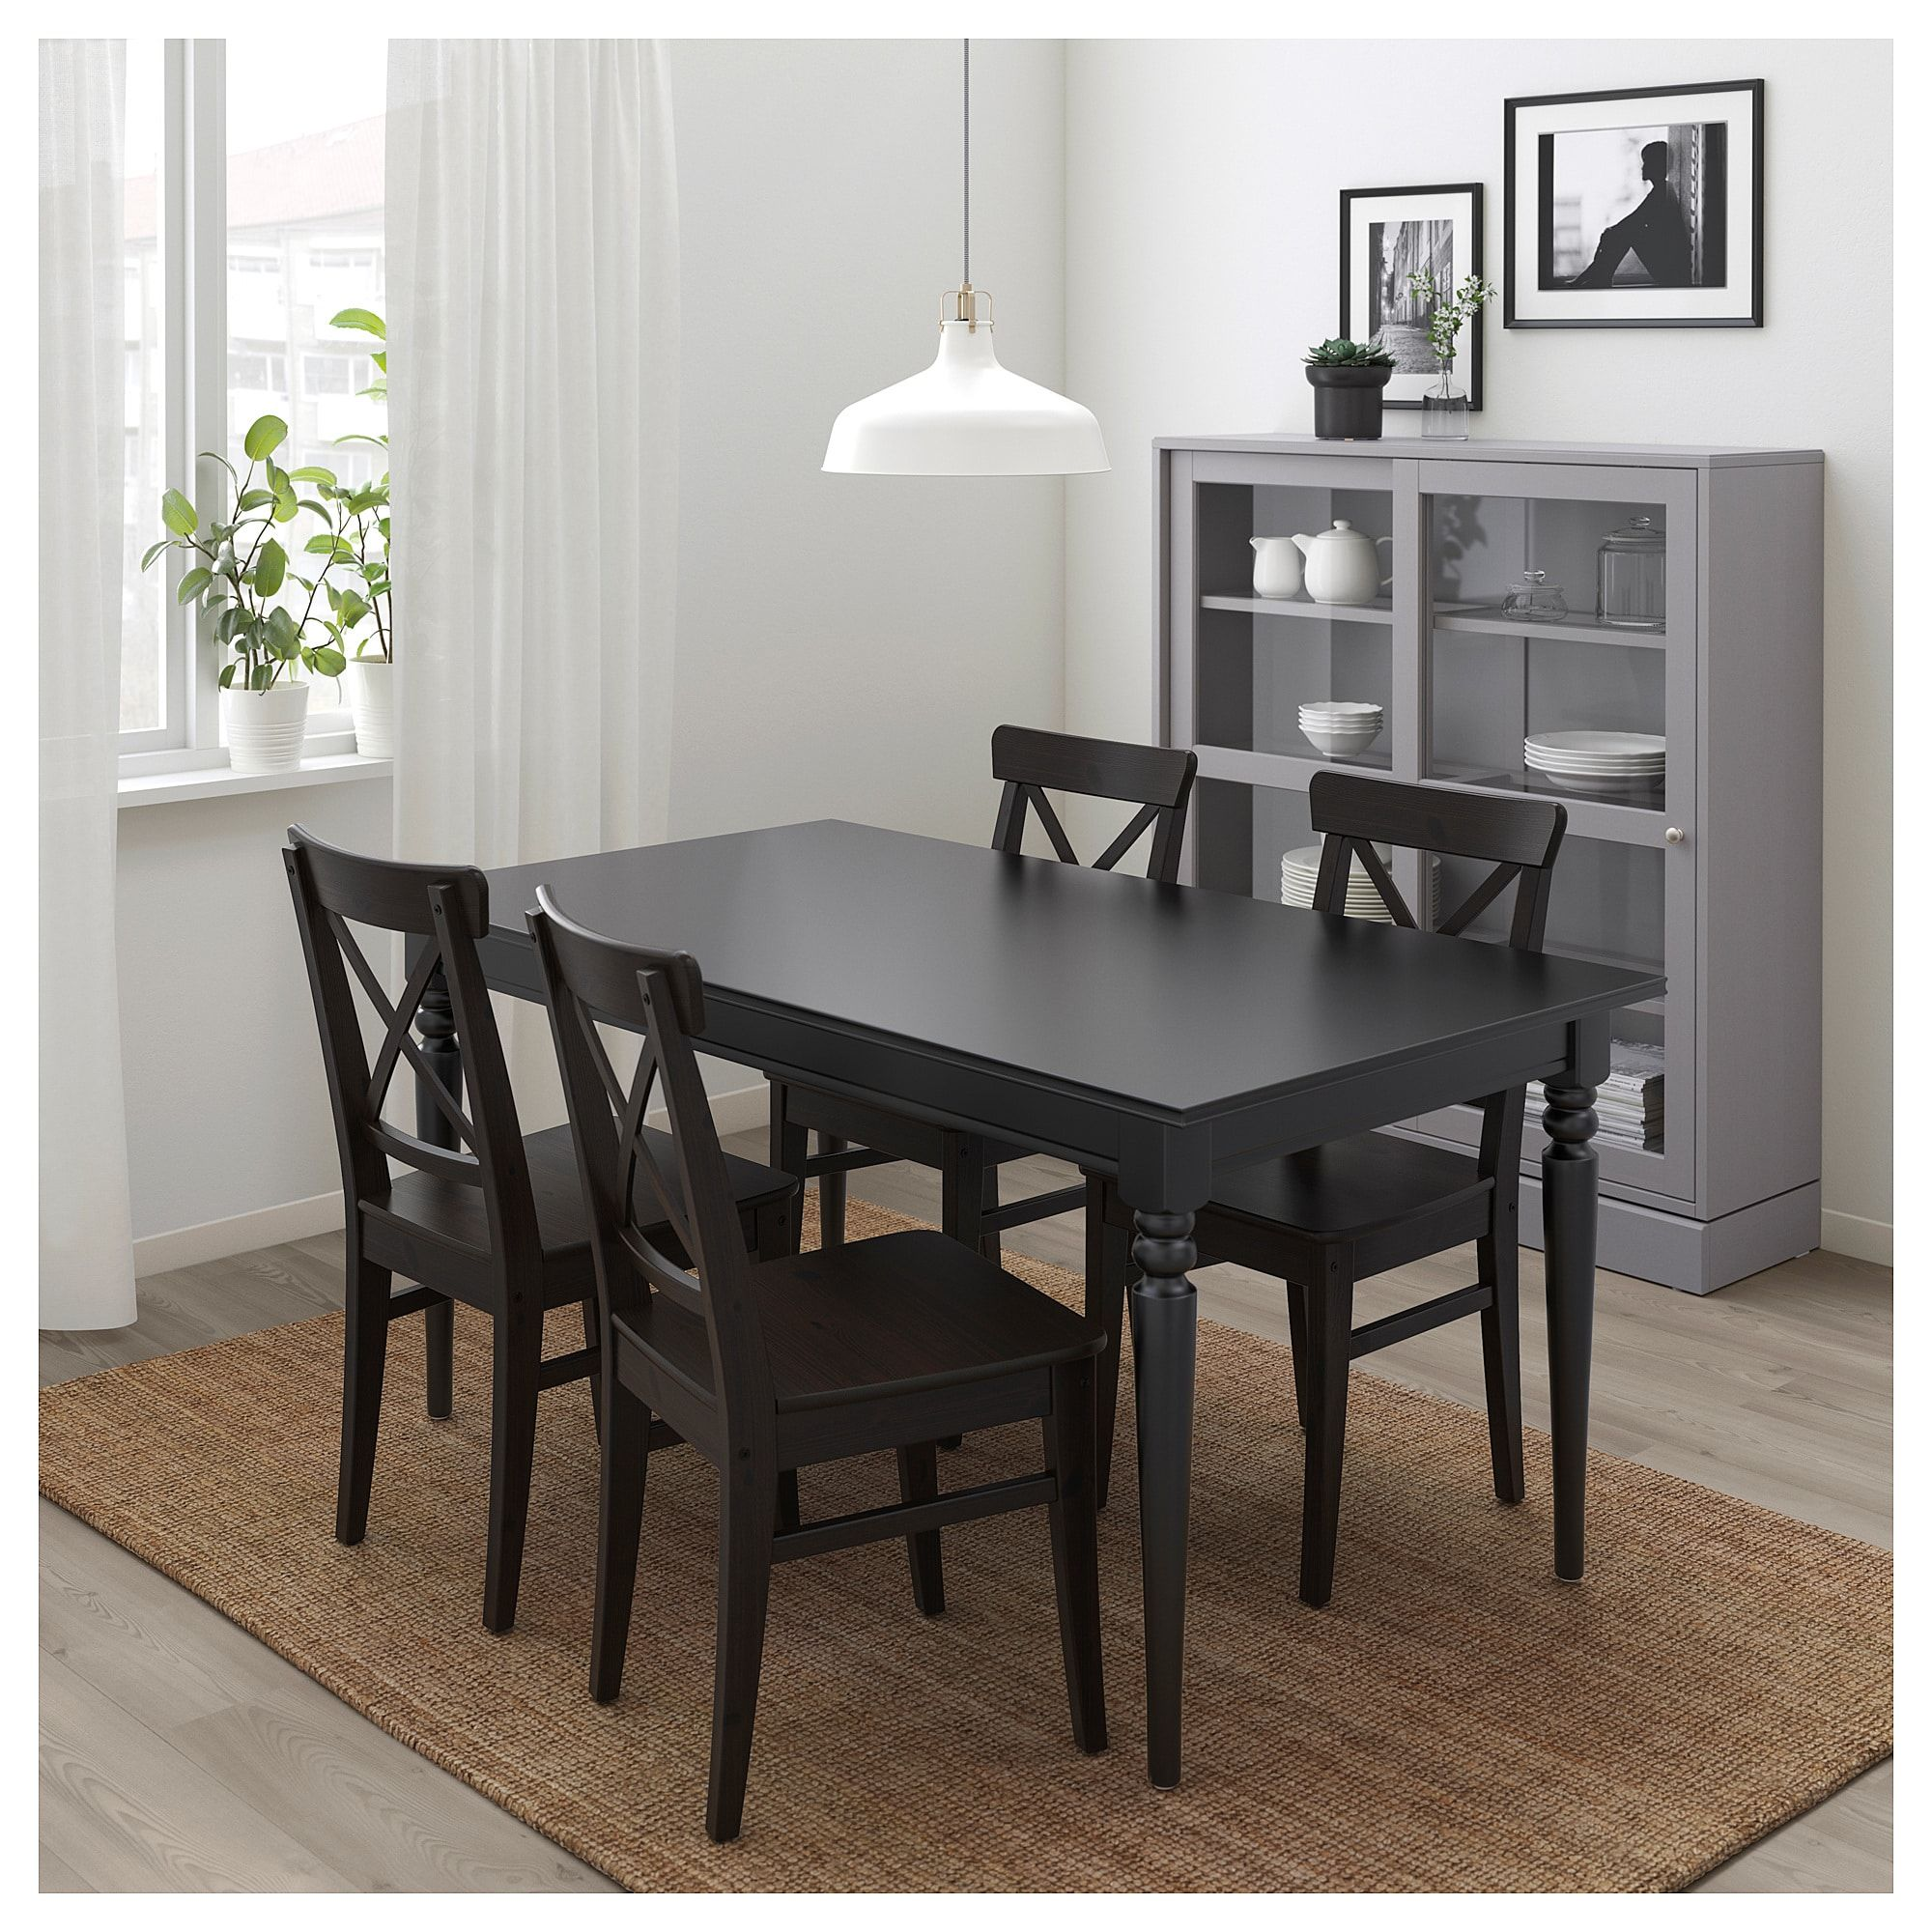 Ingatorp Ingolf Table And 4 Chairs Black Brown Black 61 84 5